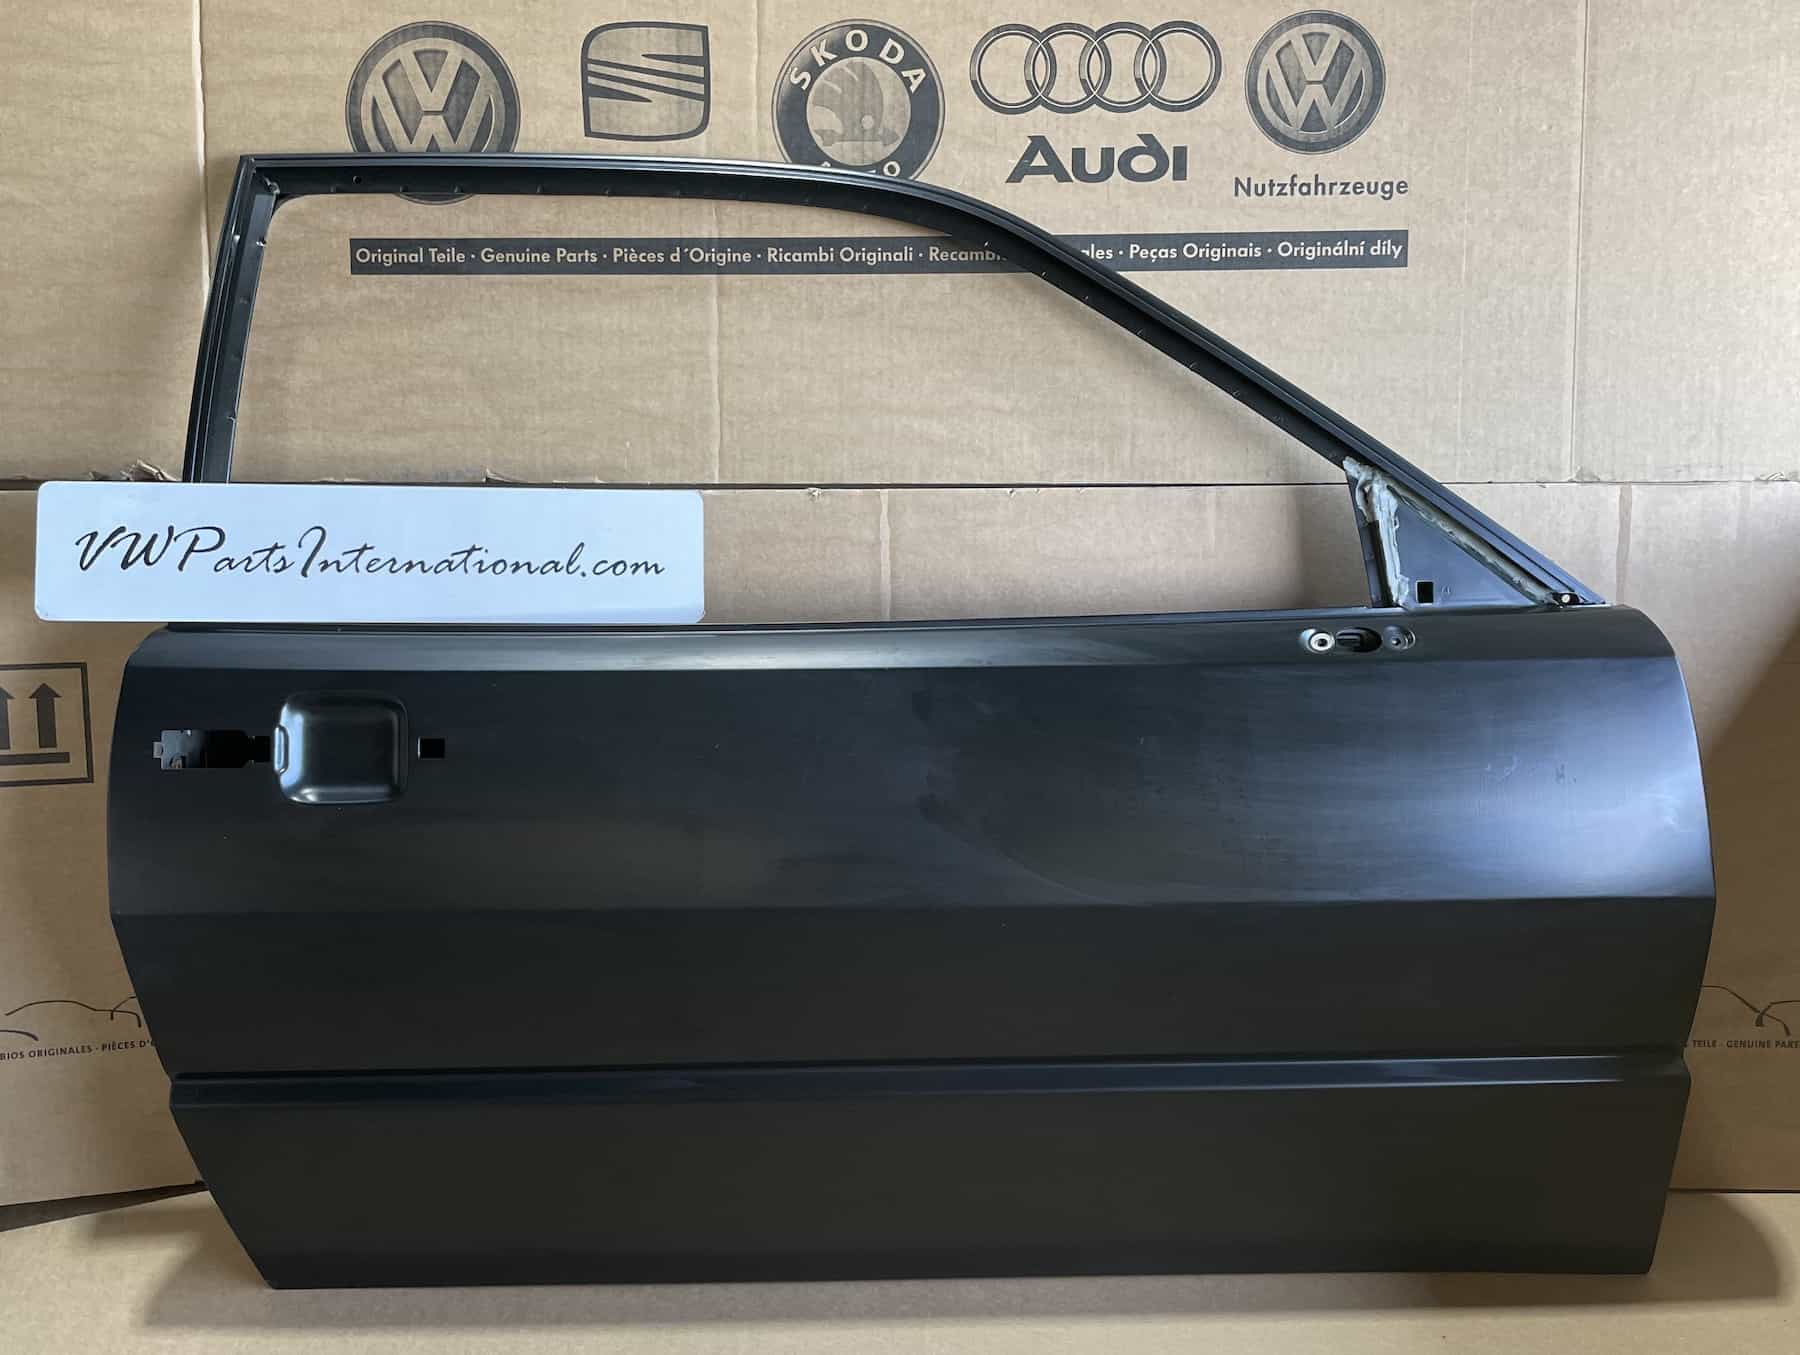 VW Corrado Front Right OS Replacement Door Brand New Genuine NOS OEM VW Part 535831052AN